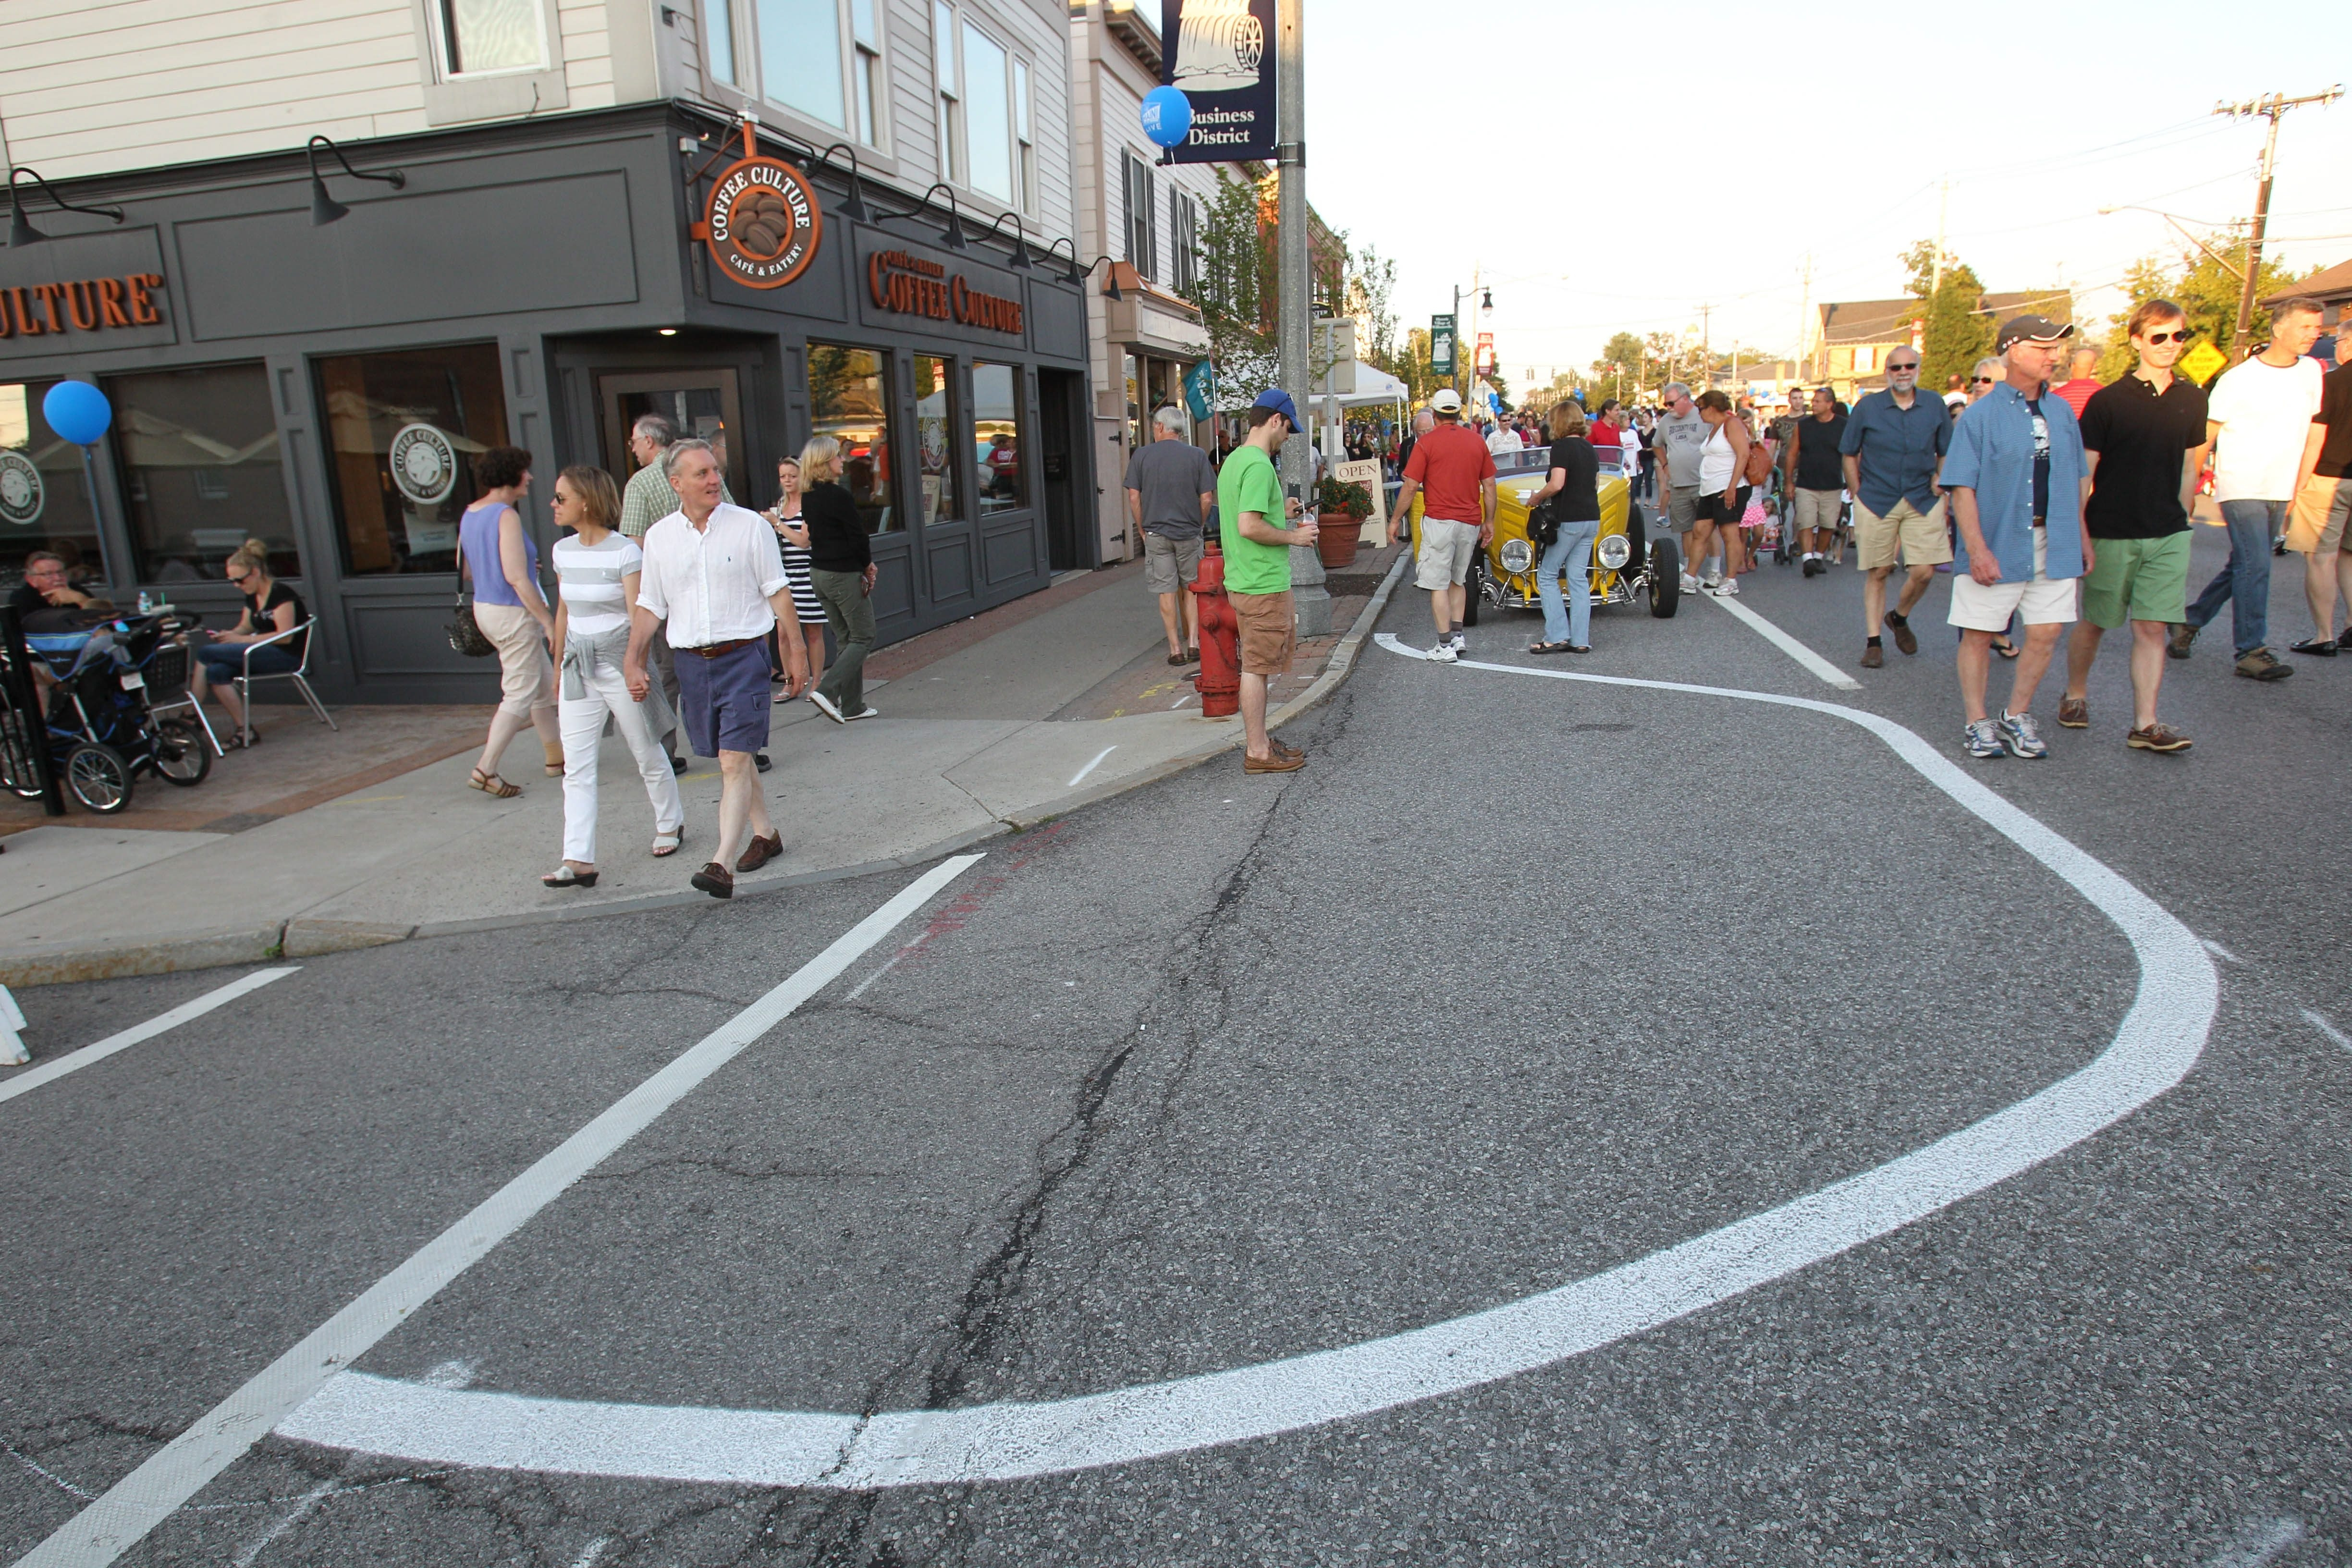 Main Street in Williamsville between Cayuga and Mill streets was closed for a festival for three hours last Aug. 17. Street markings and temporary plantings on Spring Street show some of the changes planned to make the village more pedestrian-friendly.